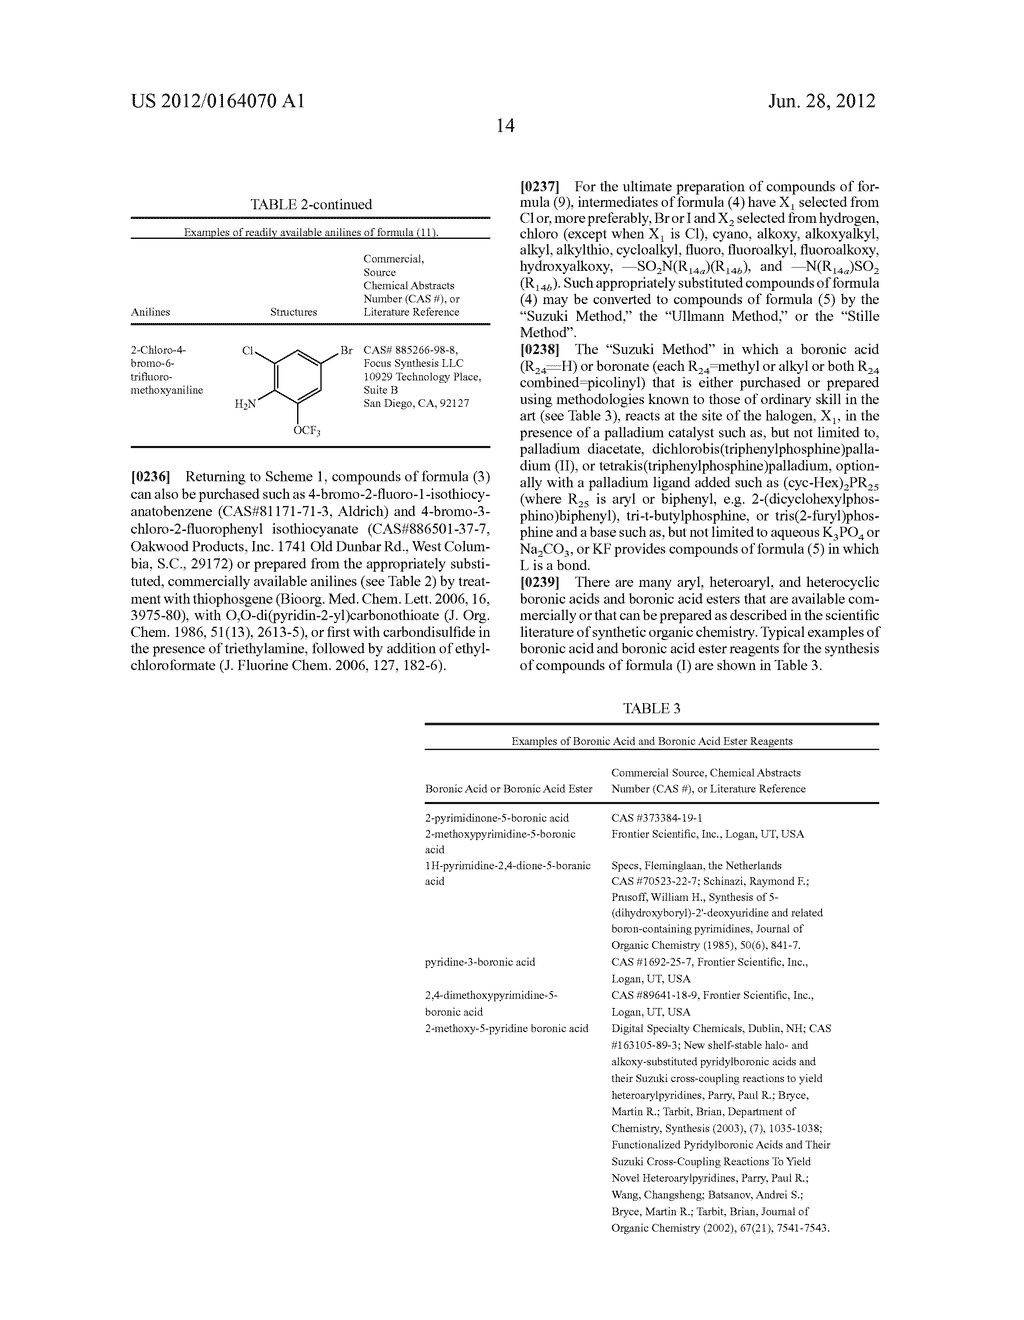 BENZOTHIAZOLE AND BENZOOXAZOLE DERIVATIVES AND METHODS OF USE - diagram, schematic, and image 15